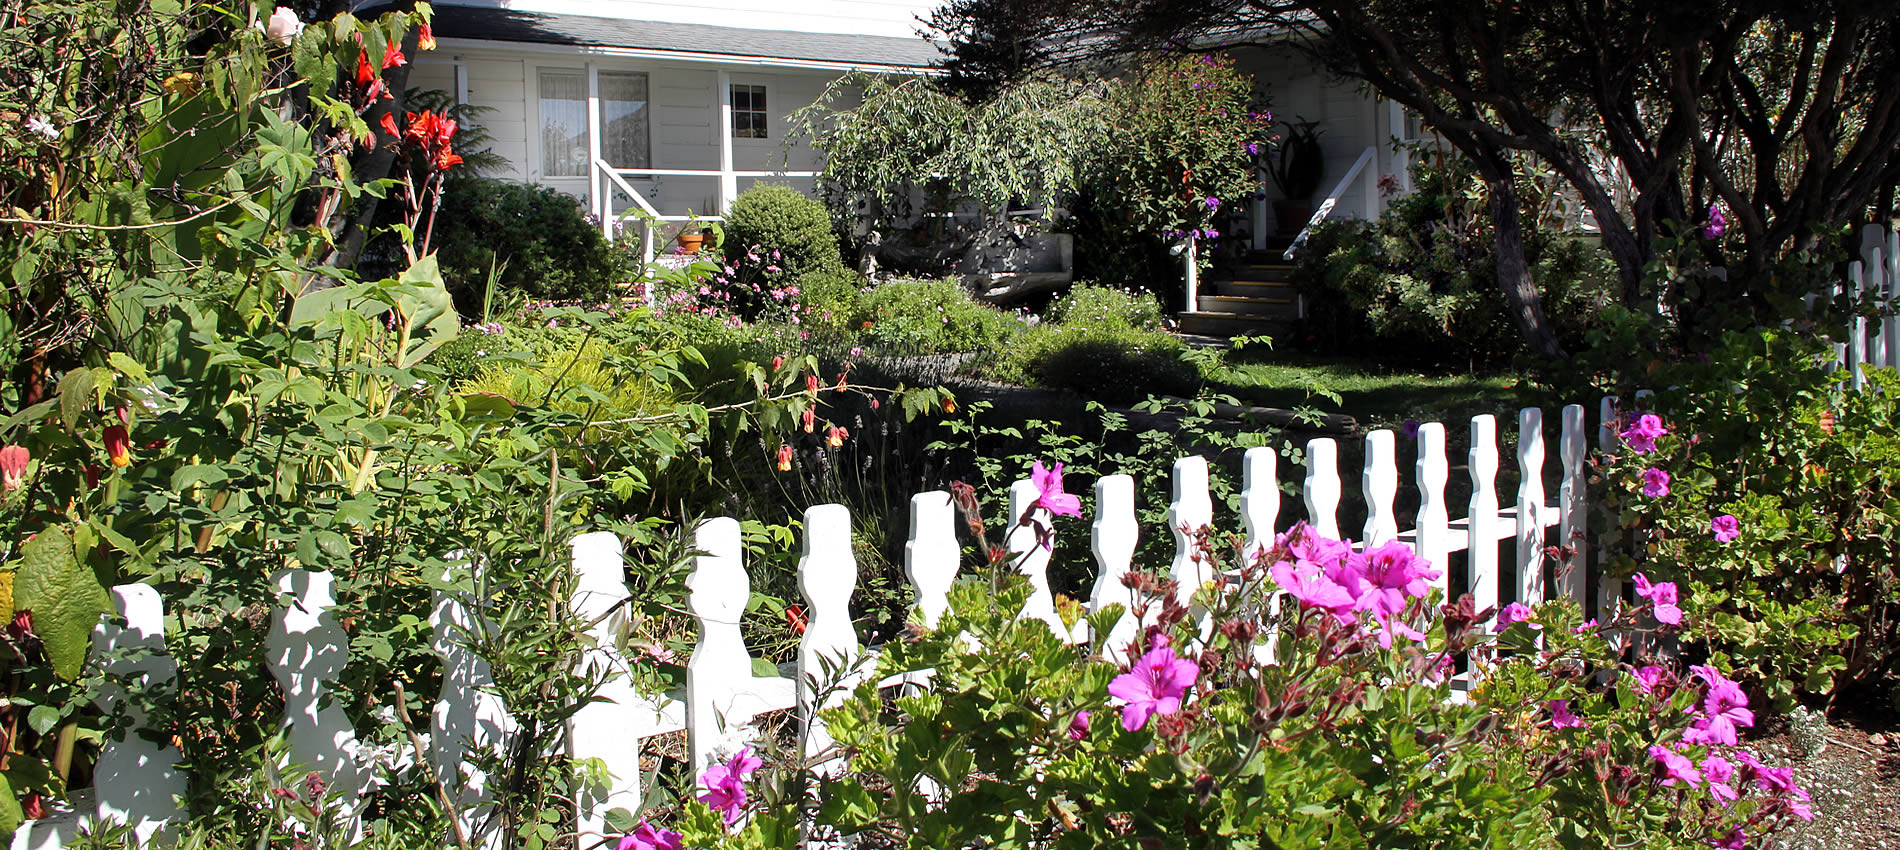 seagull inn gardens with picket fence